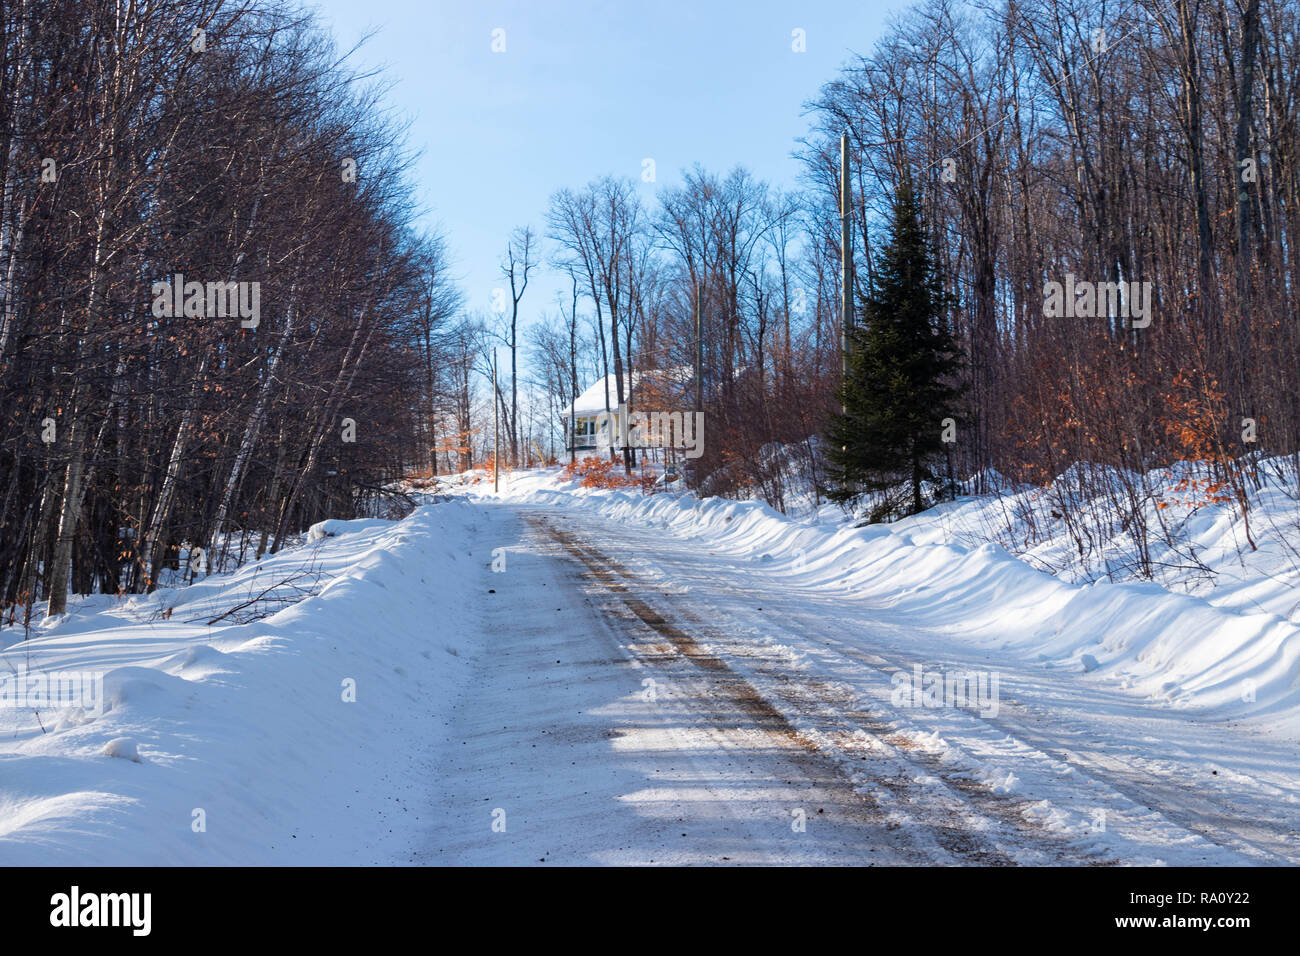 Rural scene in Winter - Wooden road with snow and Yellow house in background - Stock Image